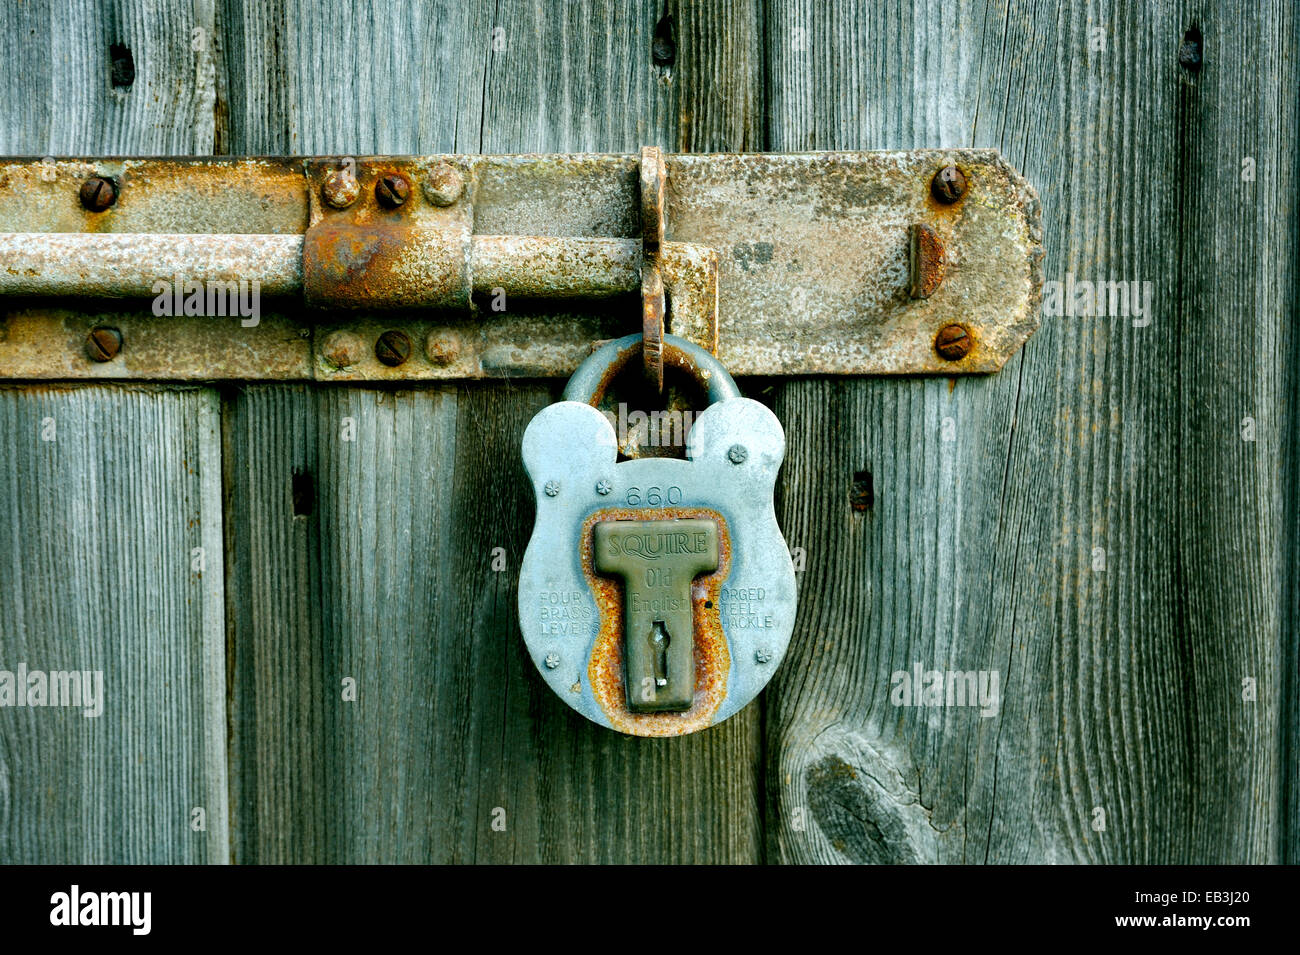 OLD PADLOCK MADE FROM METAL LOCKING AN OLD BOLT ON A WOODEN DOOR - Stock Image